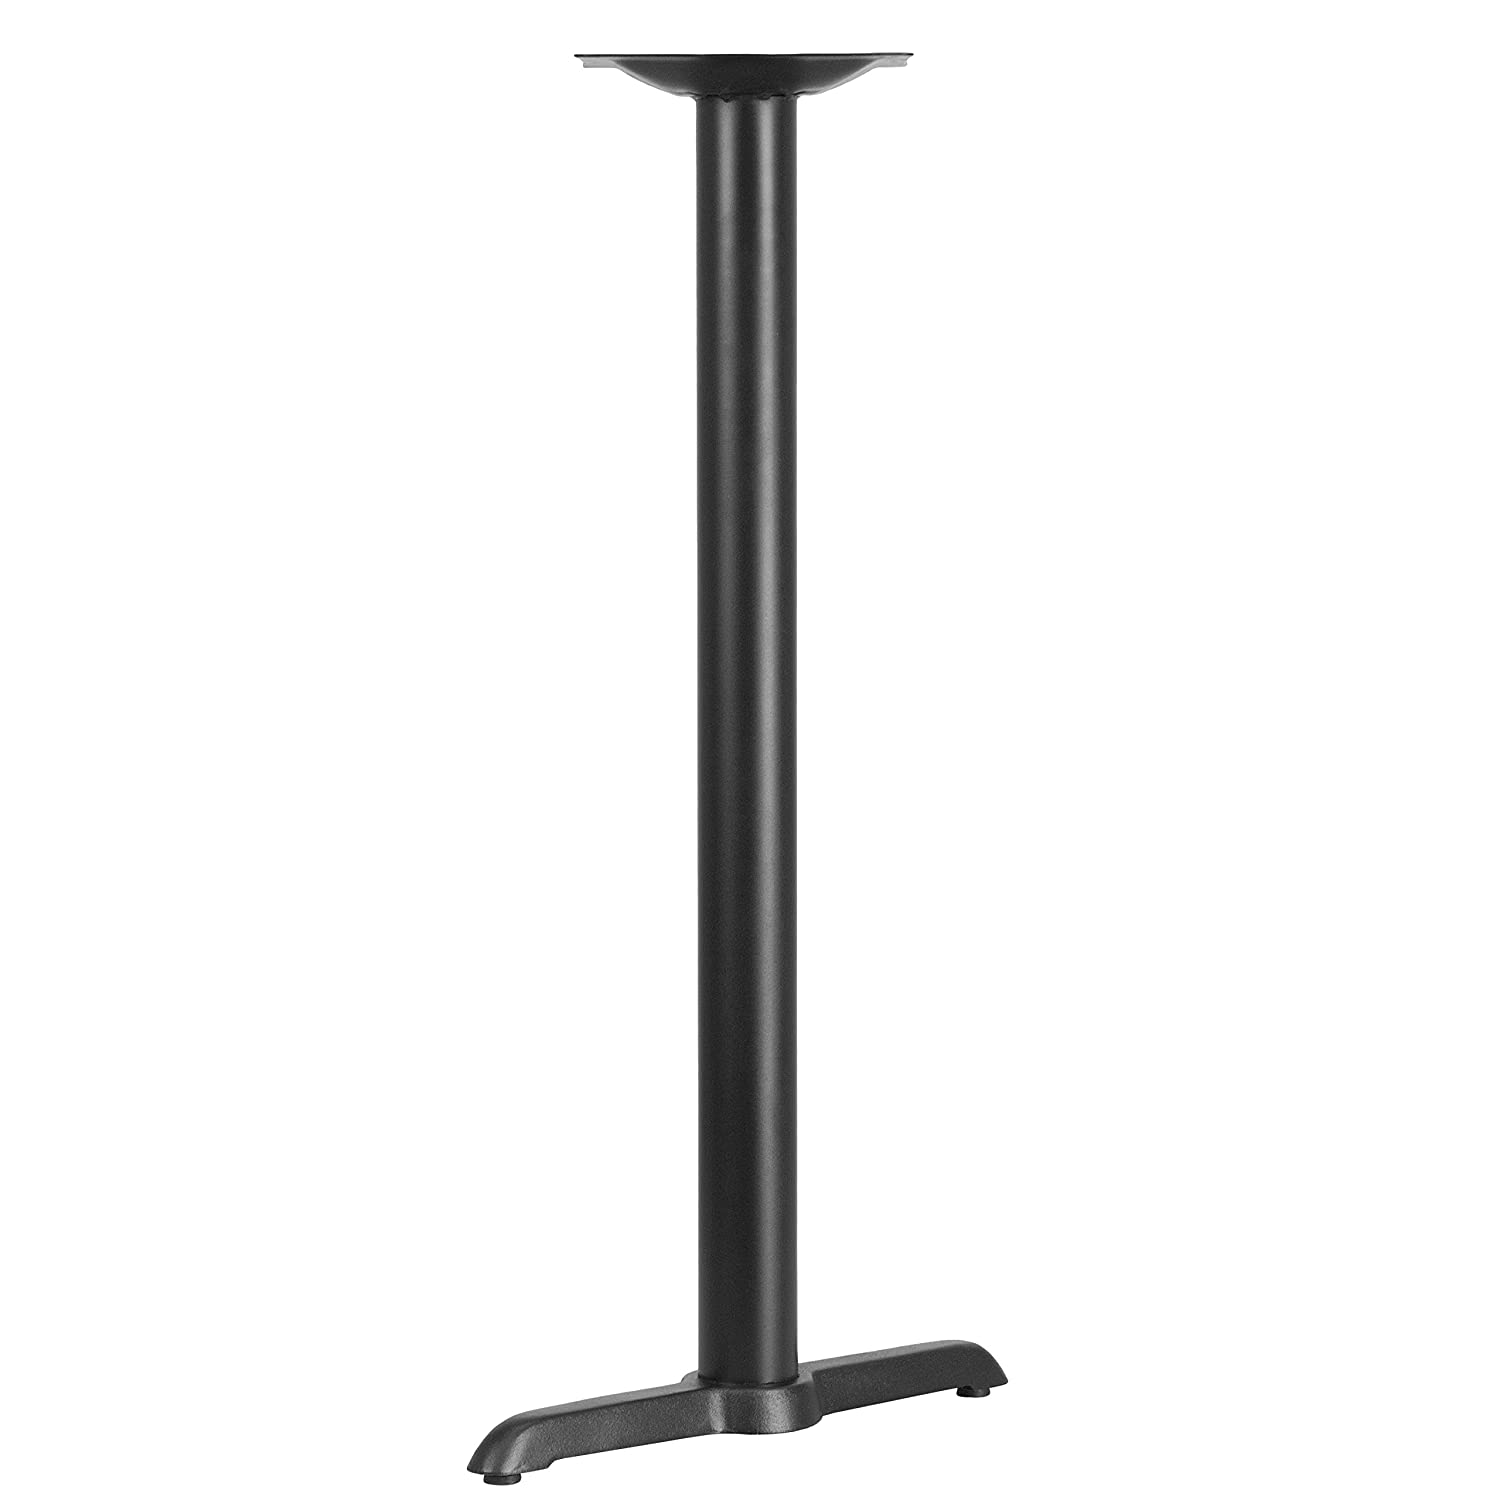 Amazoncom Flash Furniture X Restaurant Table TBase With - T base table legs